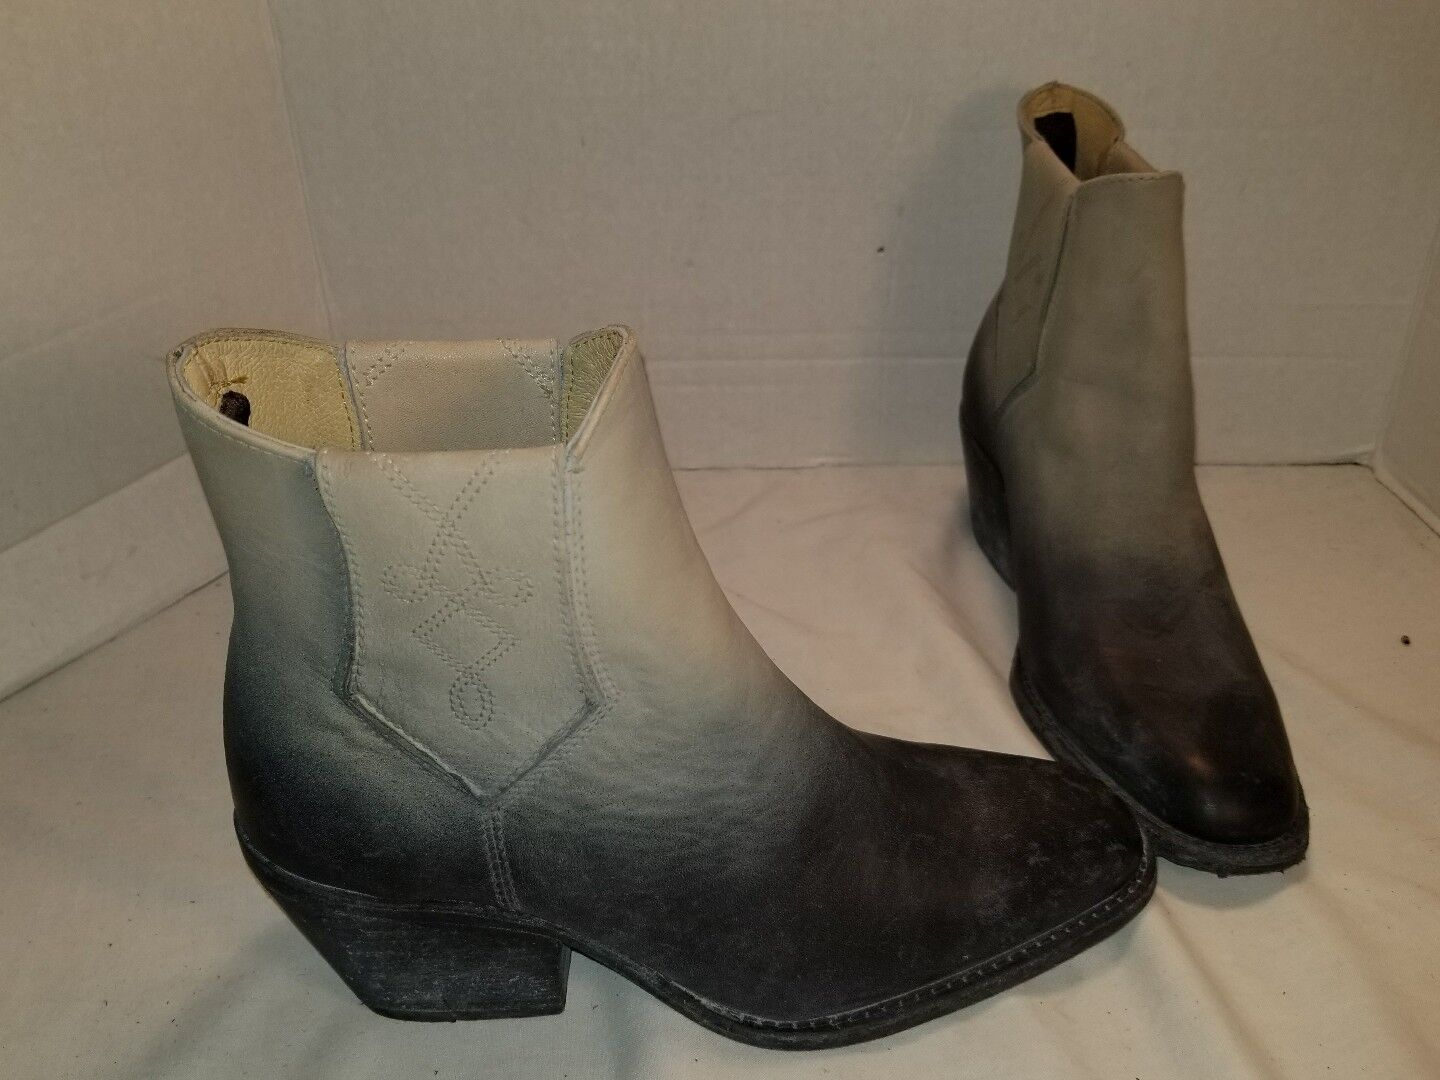 NEW FARYLROBIN WILLIAMS DISTRESSED BLACK LEATHER ANKLE BOOTS US 8